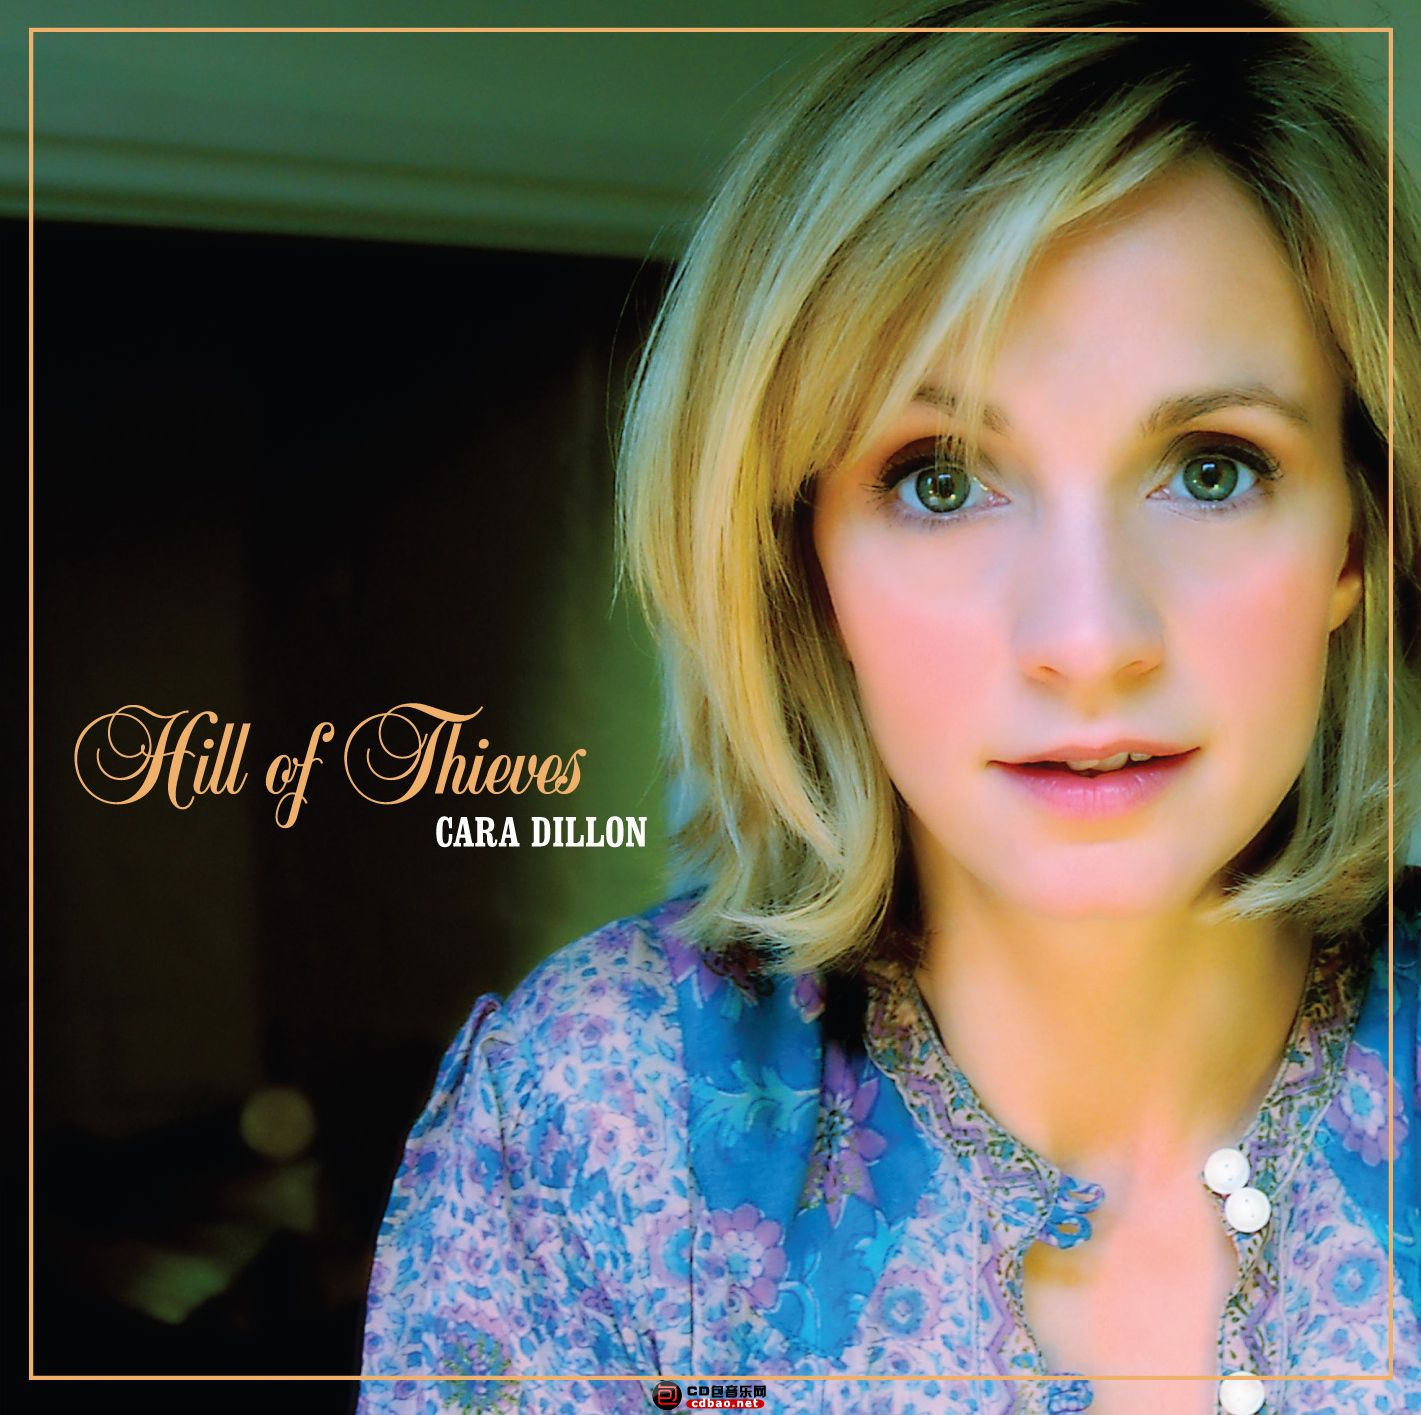 cara dillon - hill of thieves - front.jpg